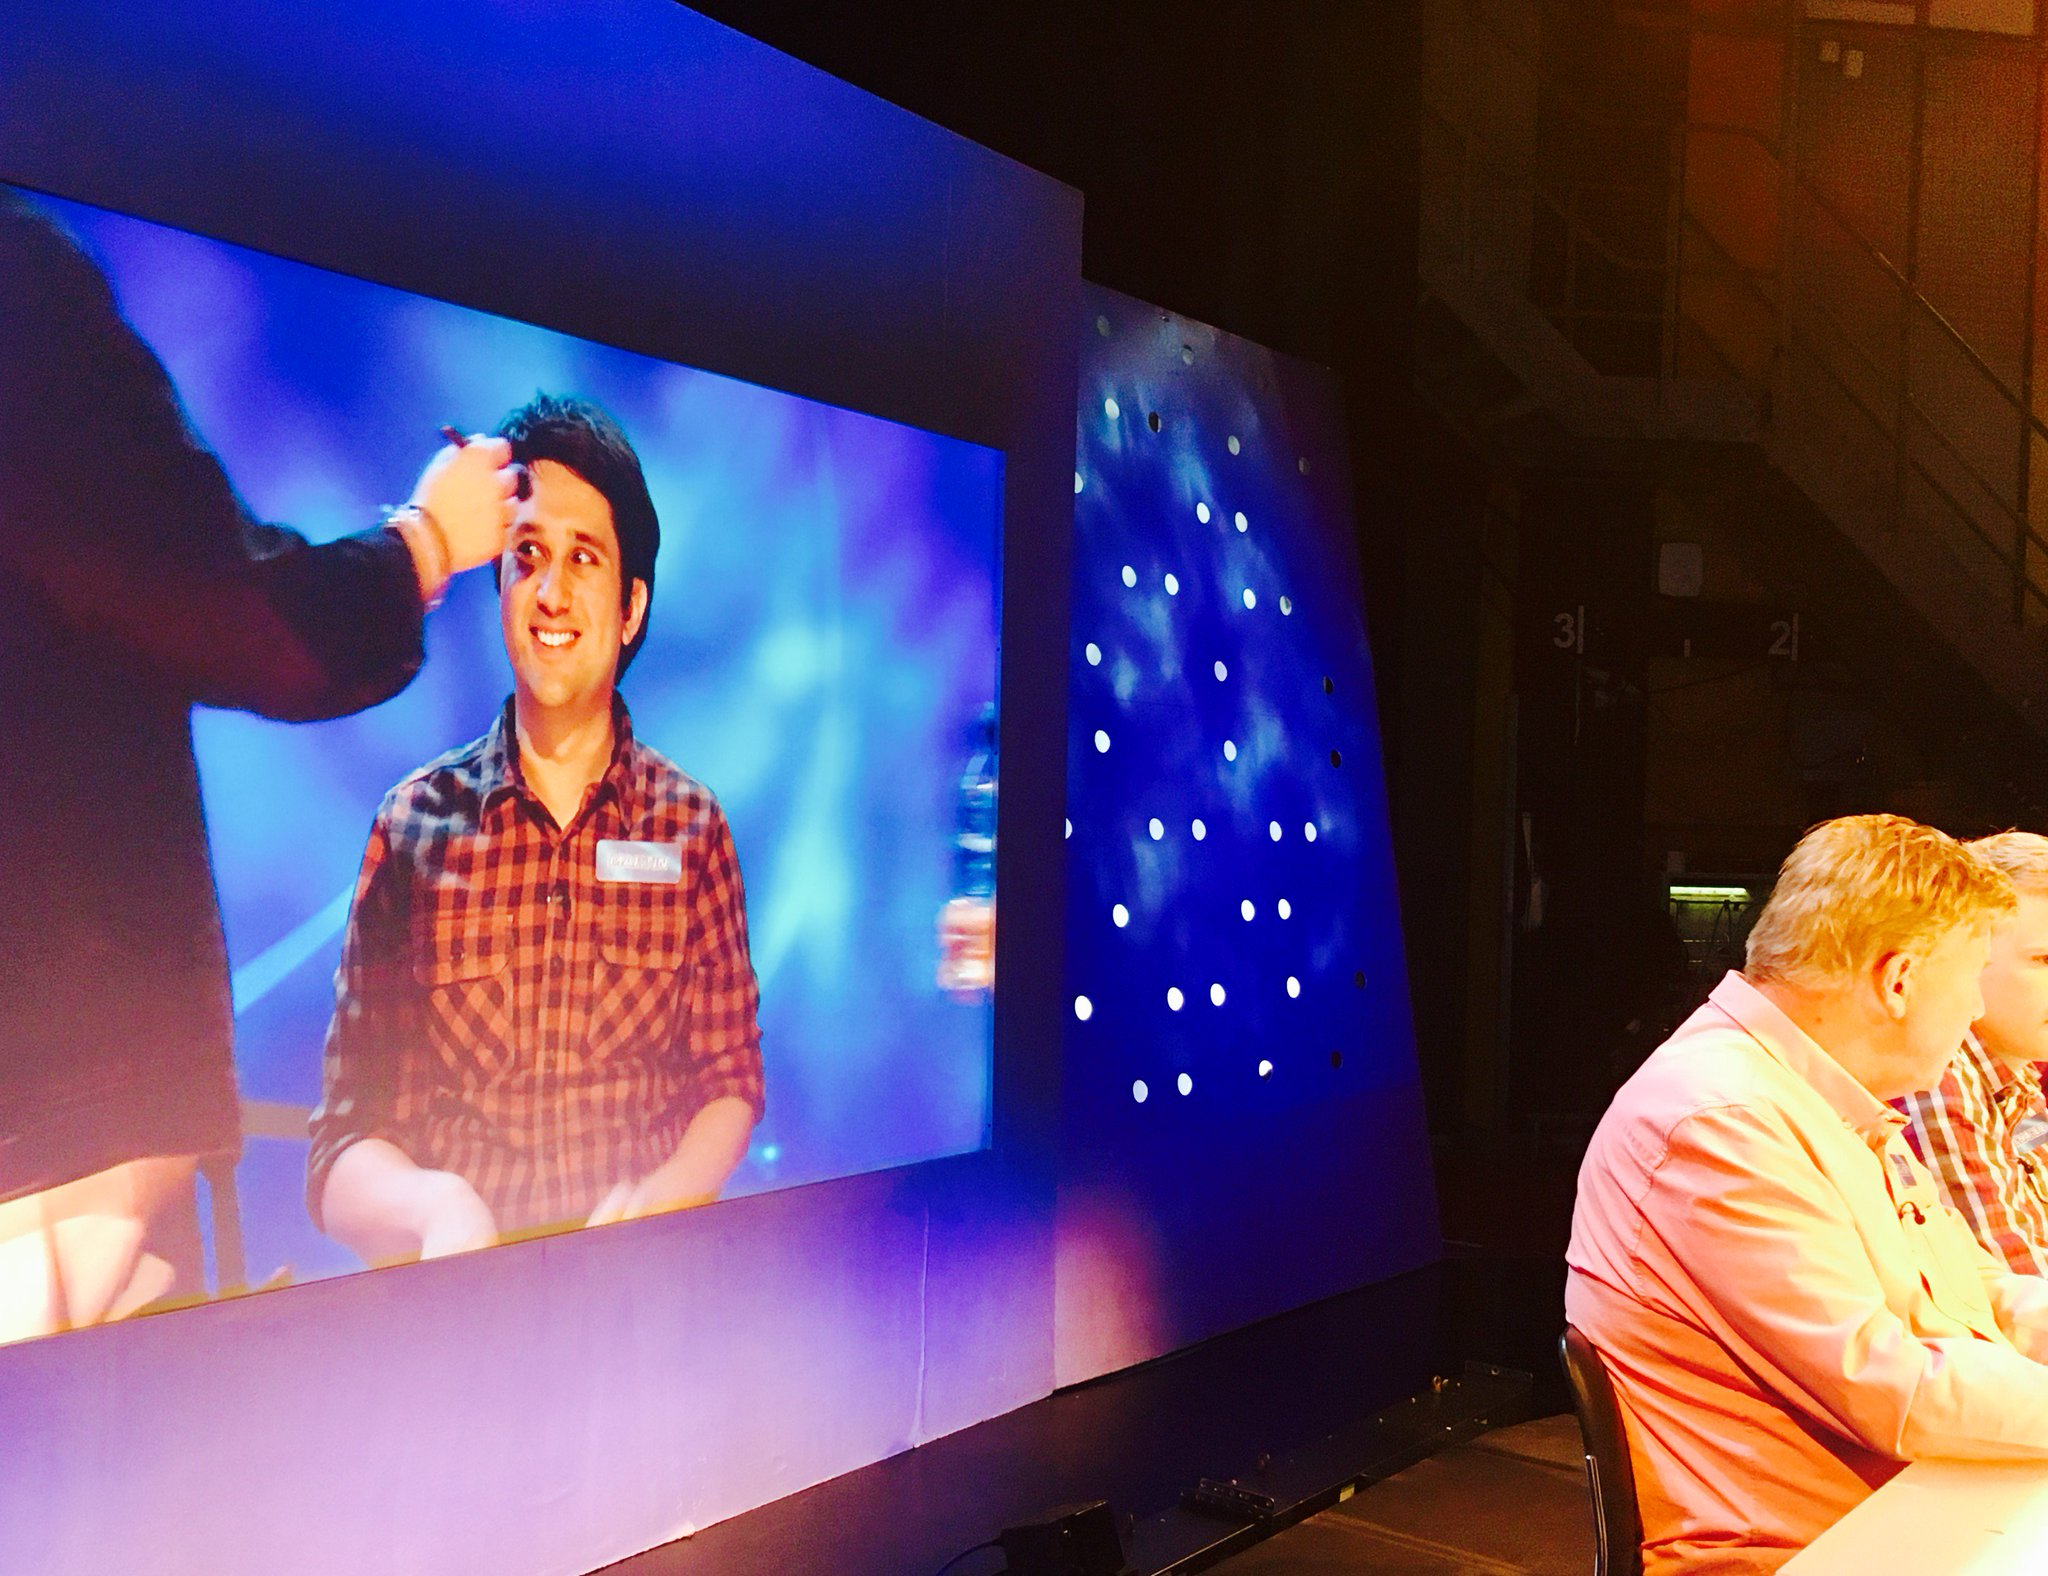 It's only @Ed_Miliband in the #Eggheads studio today https://t.co/TizGhL7bDl